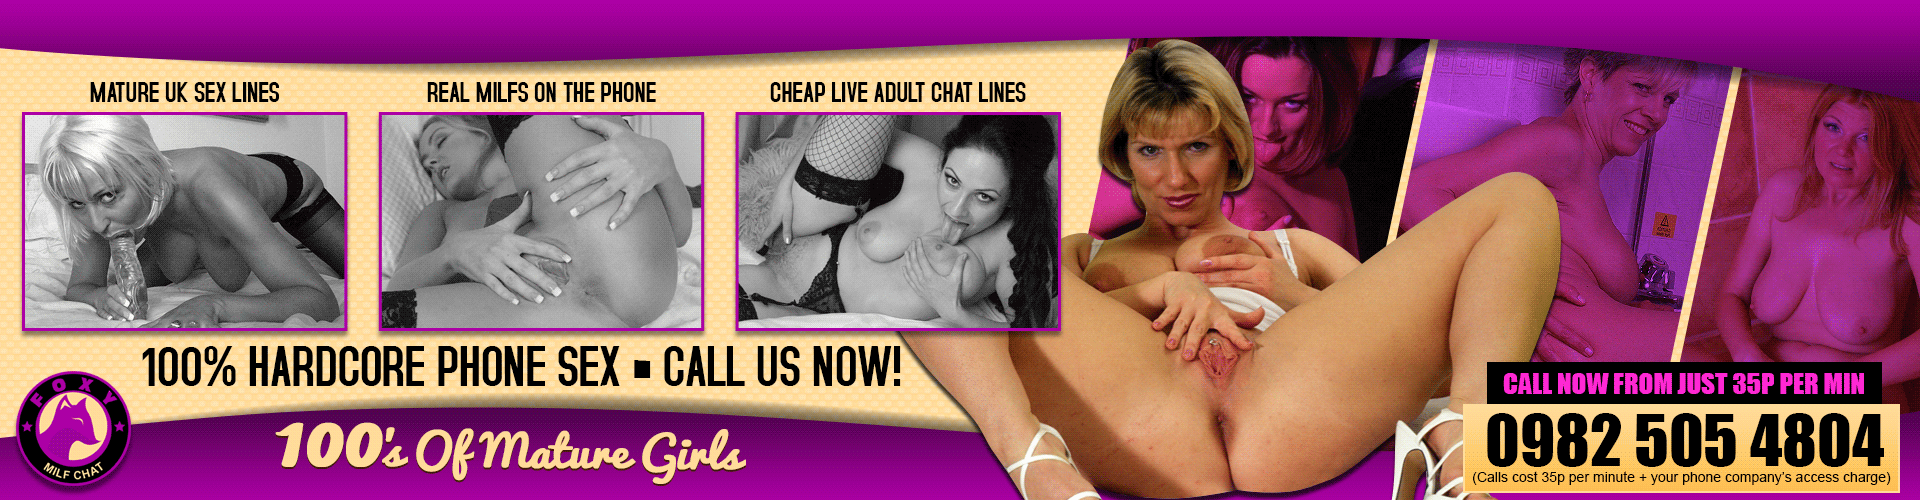 foxy-milf-chat-header